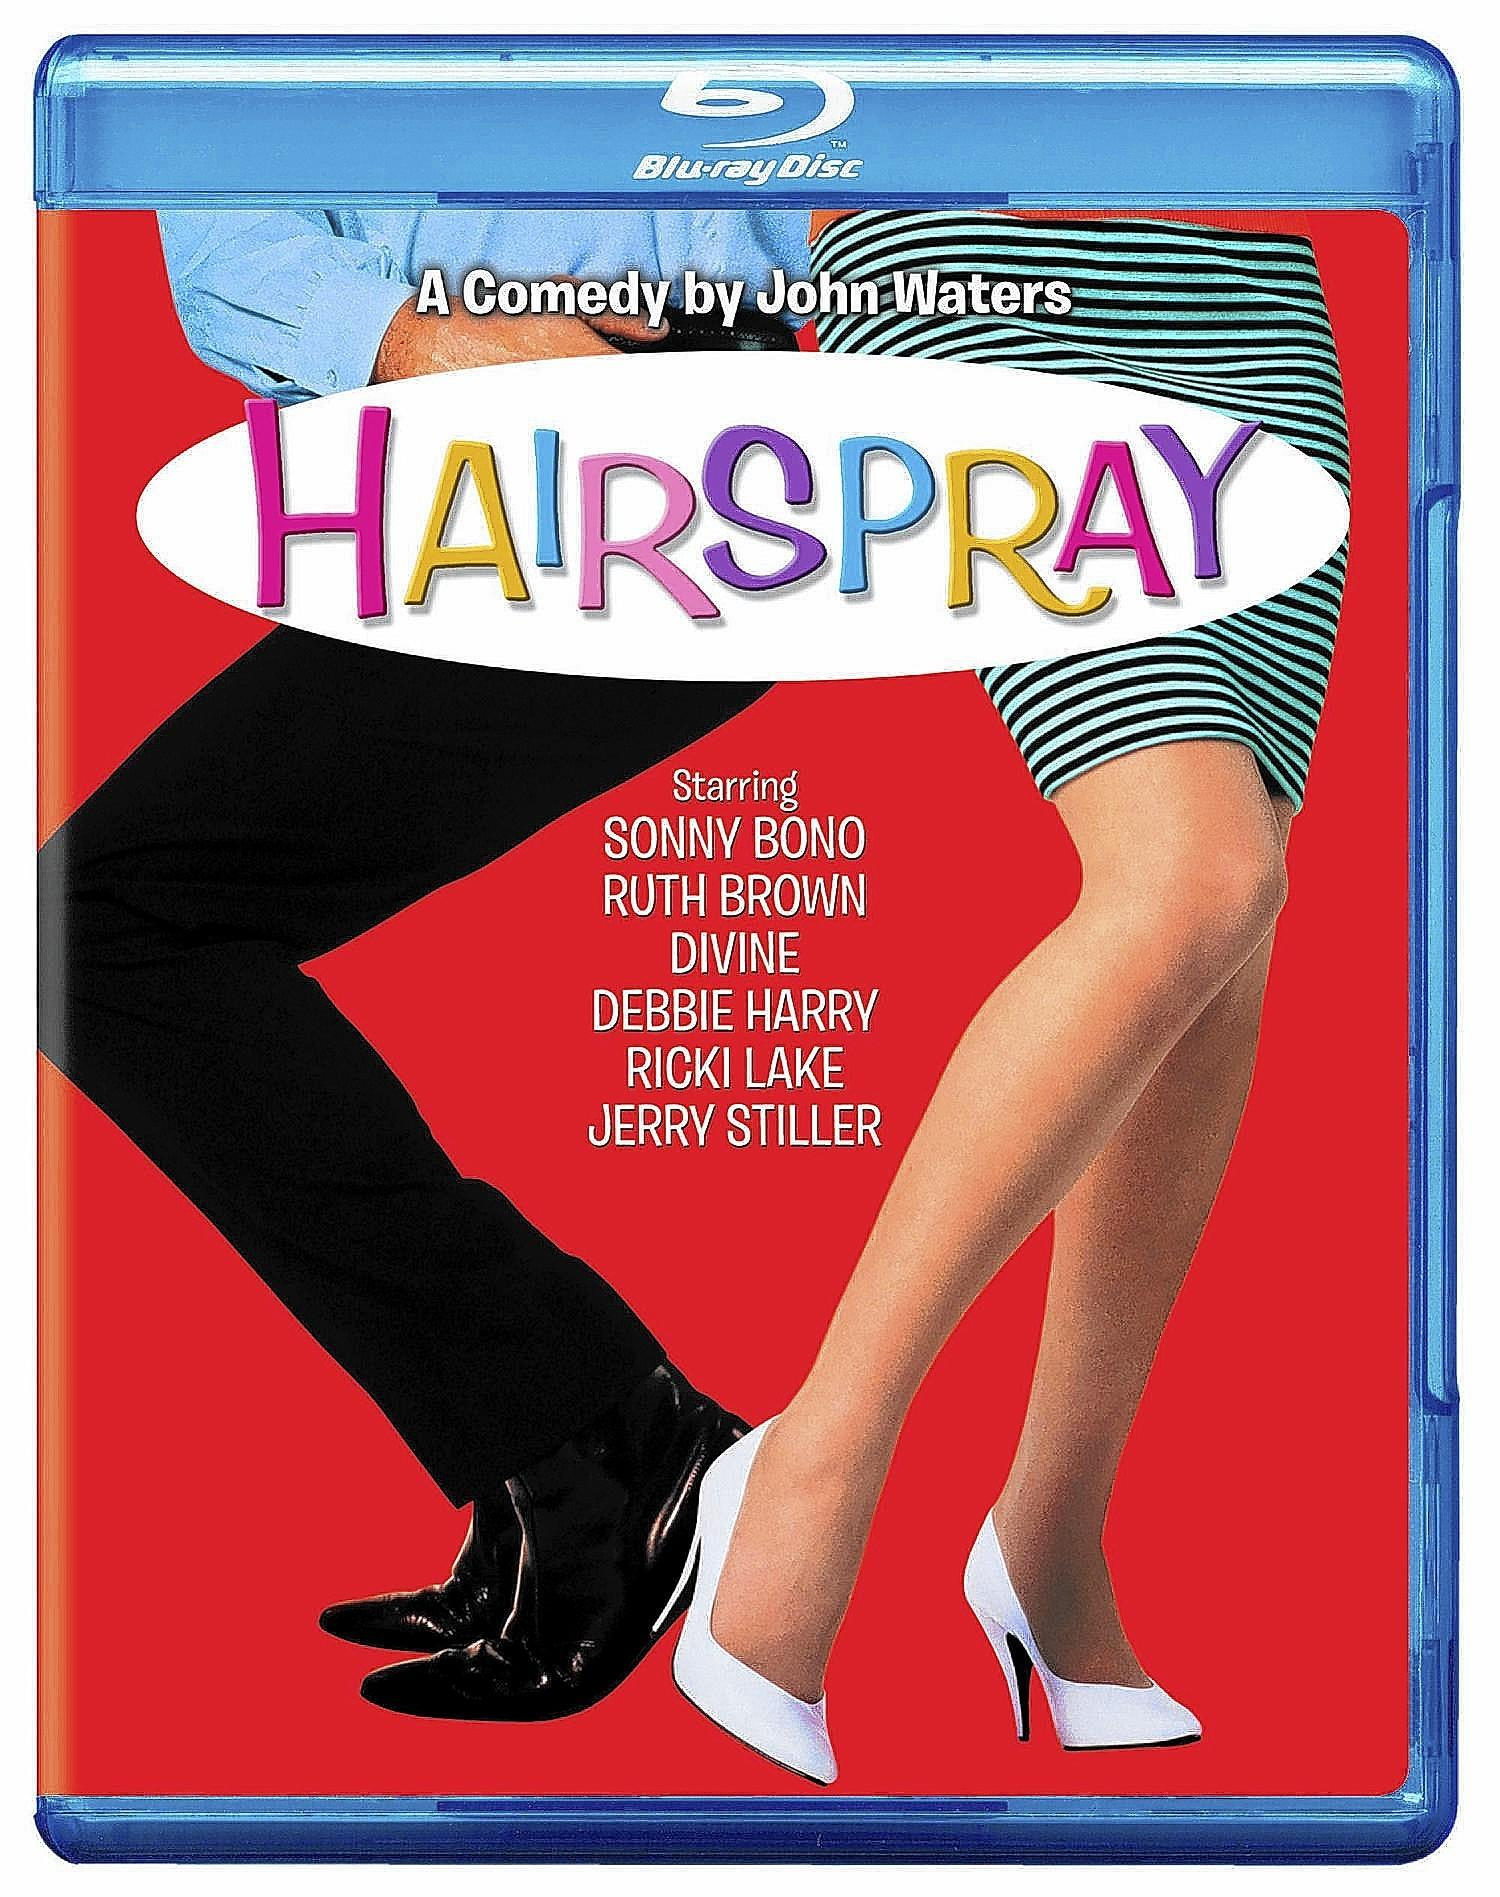 The John Waters film 'Hairspray,' filmed partly in Allentown, is out on Blu-ray.